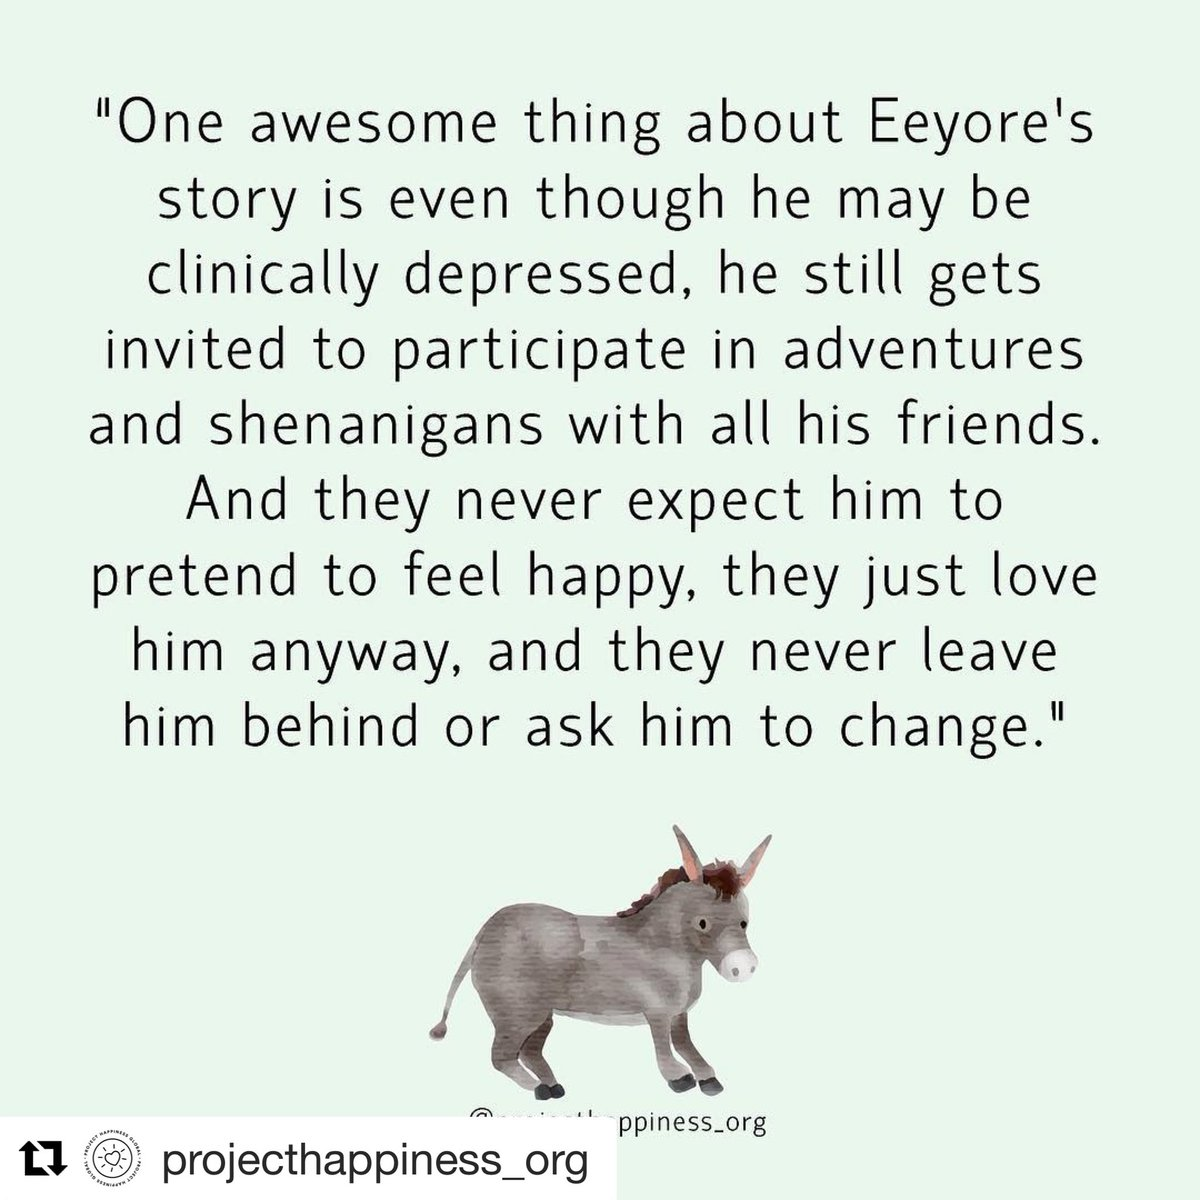 #Repost via @projecthappiness_org ・・・ Celebrate those in your life who don't want to change you but just want your company. You feel at ease. Thank the friends who made you feel connected when you were feeling disconnected.#shinebright  #projecthappiness <br>http://pic.twitter.com/Hke1Y2MbEr